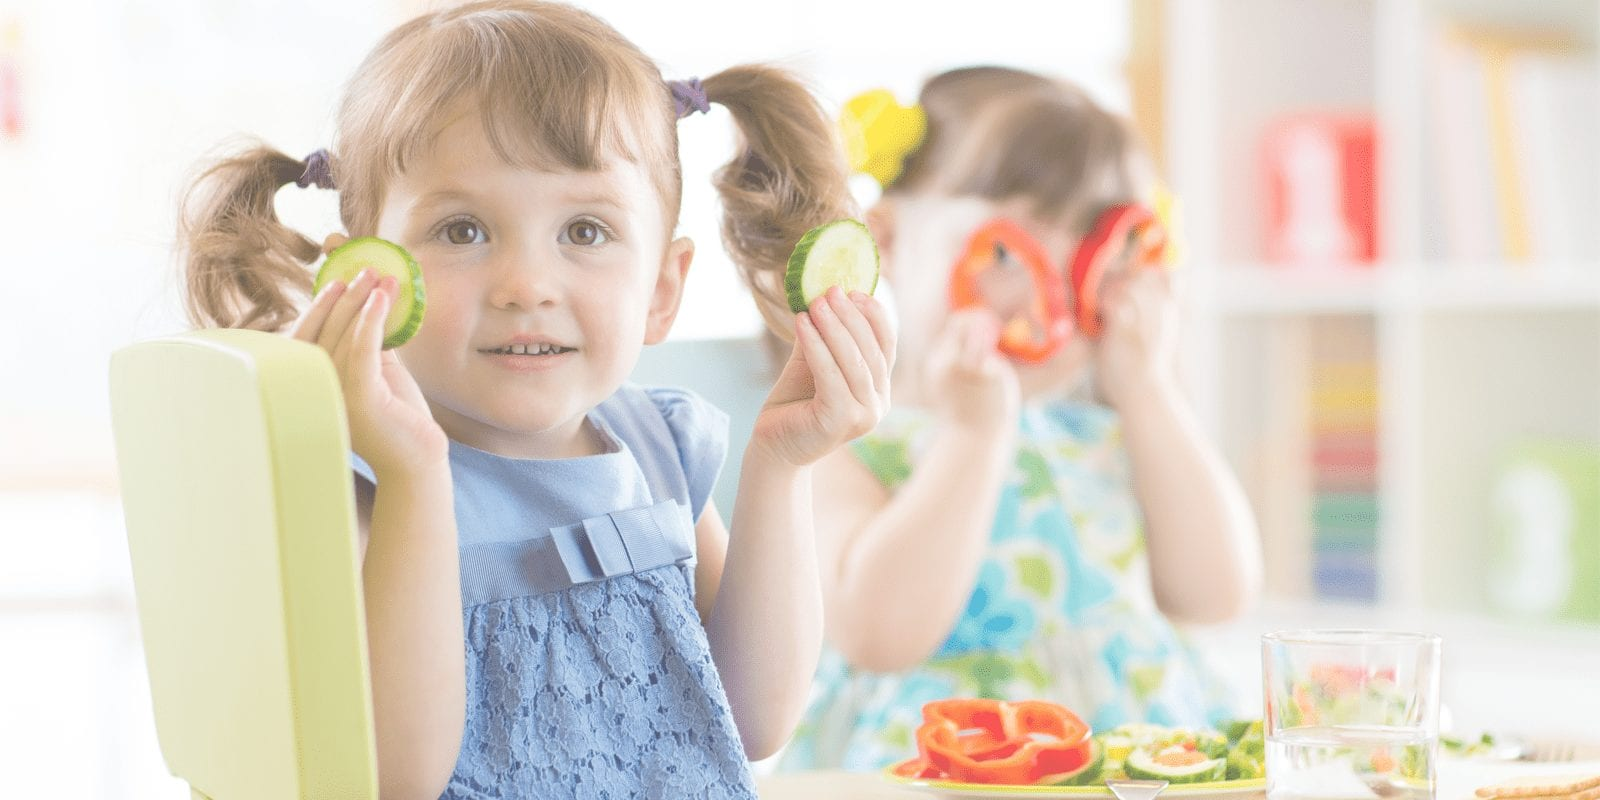 Two little girls playing and eating with vegetables